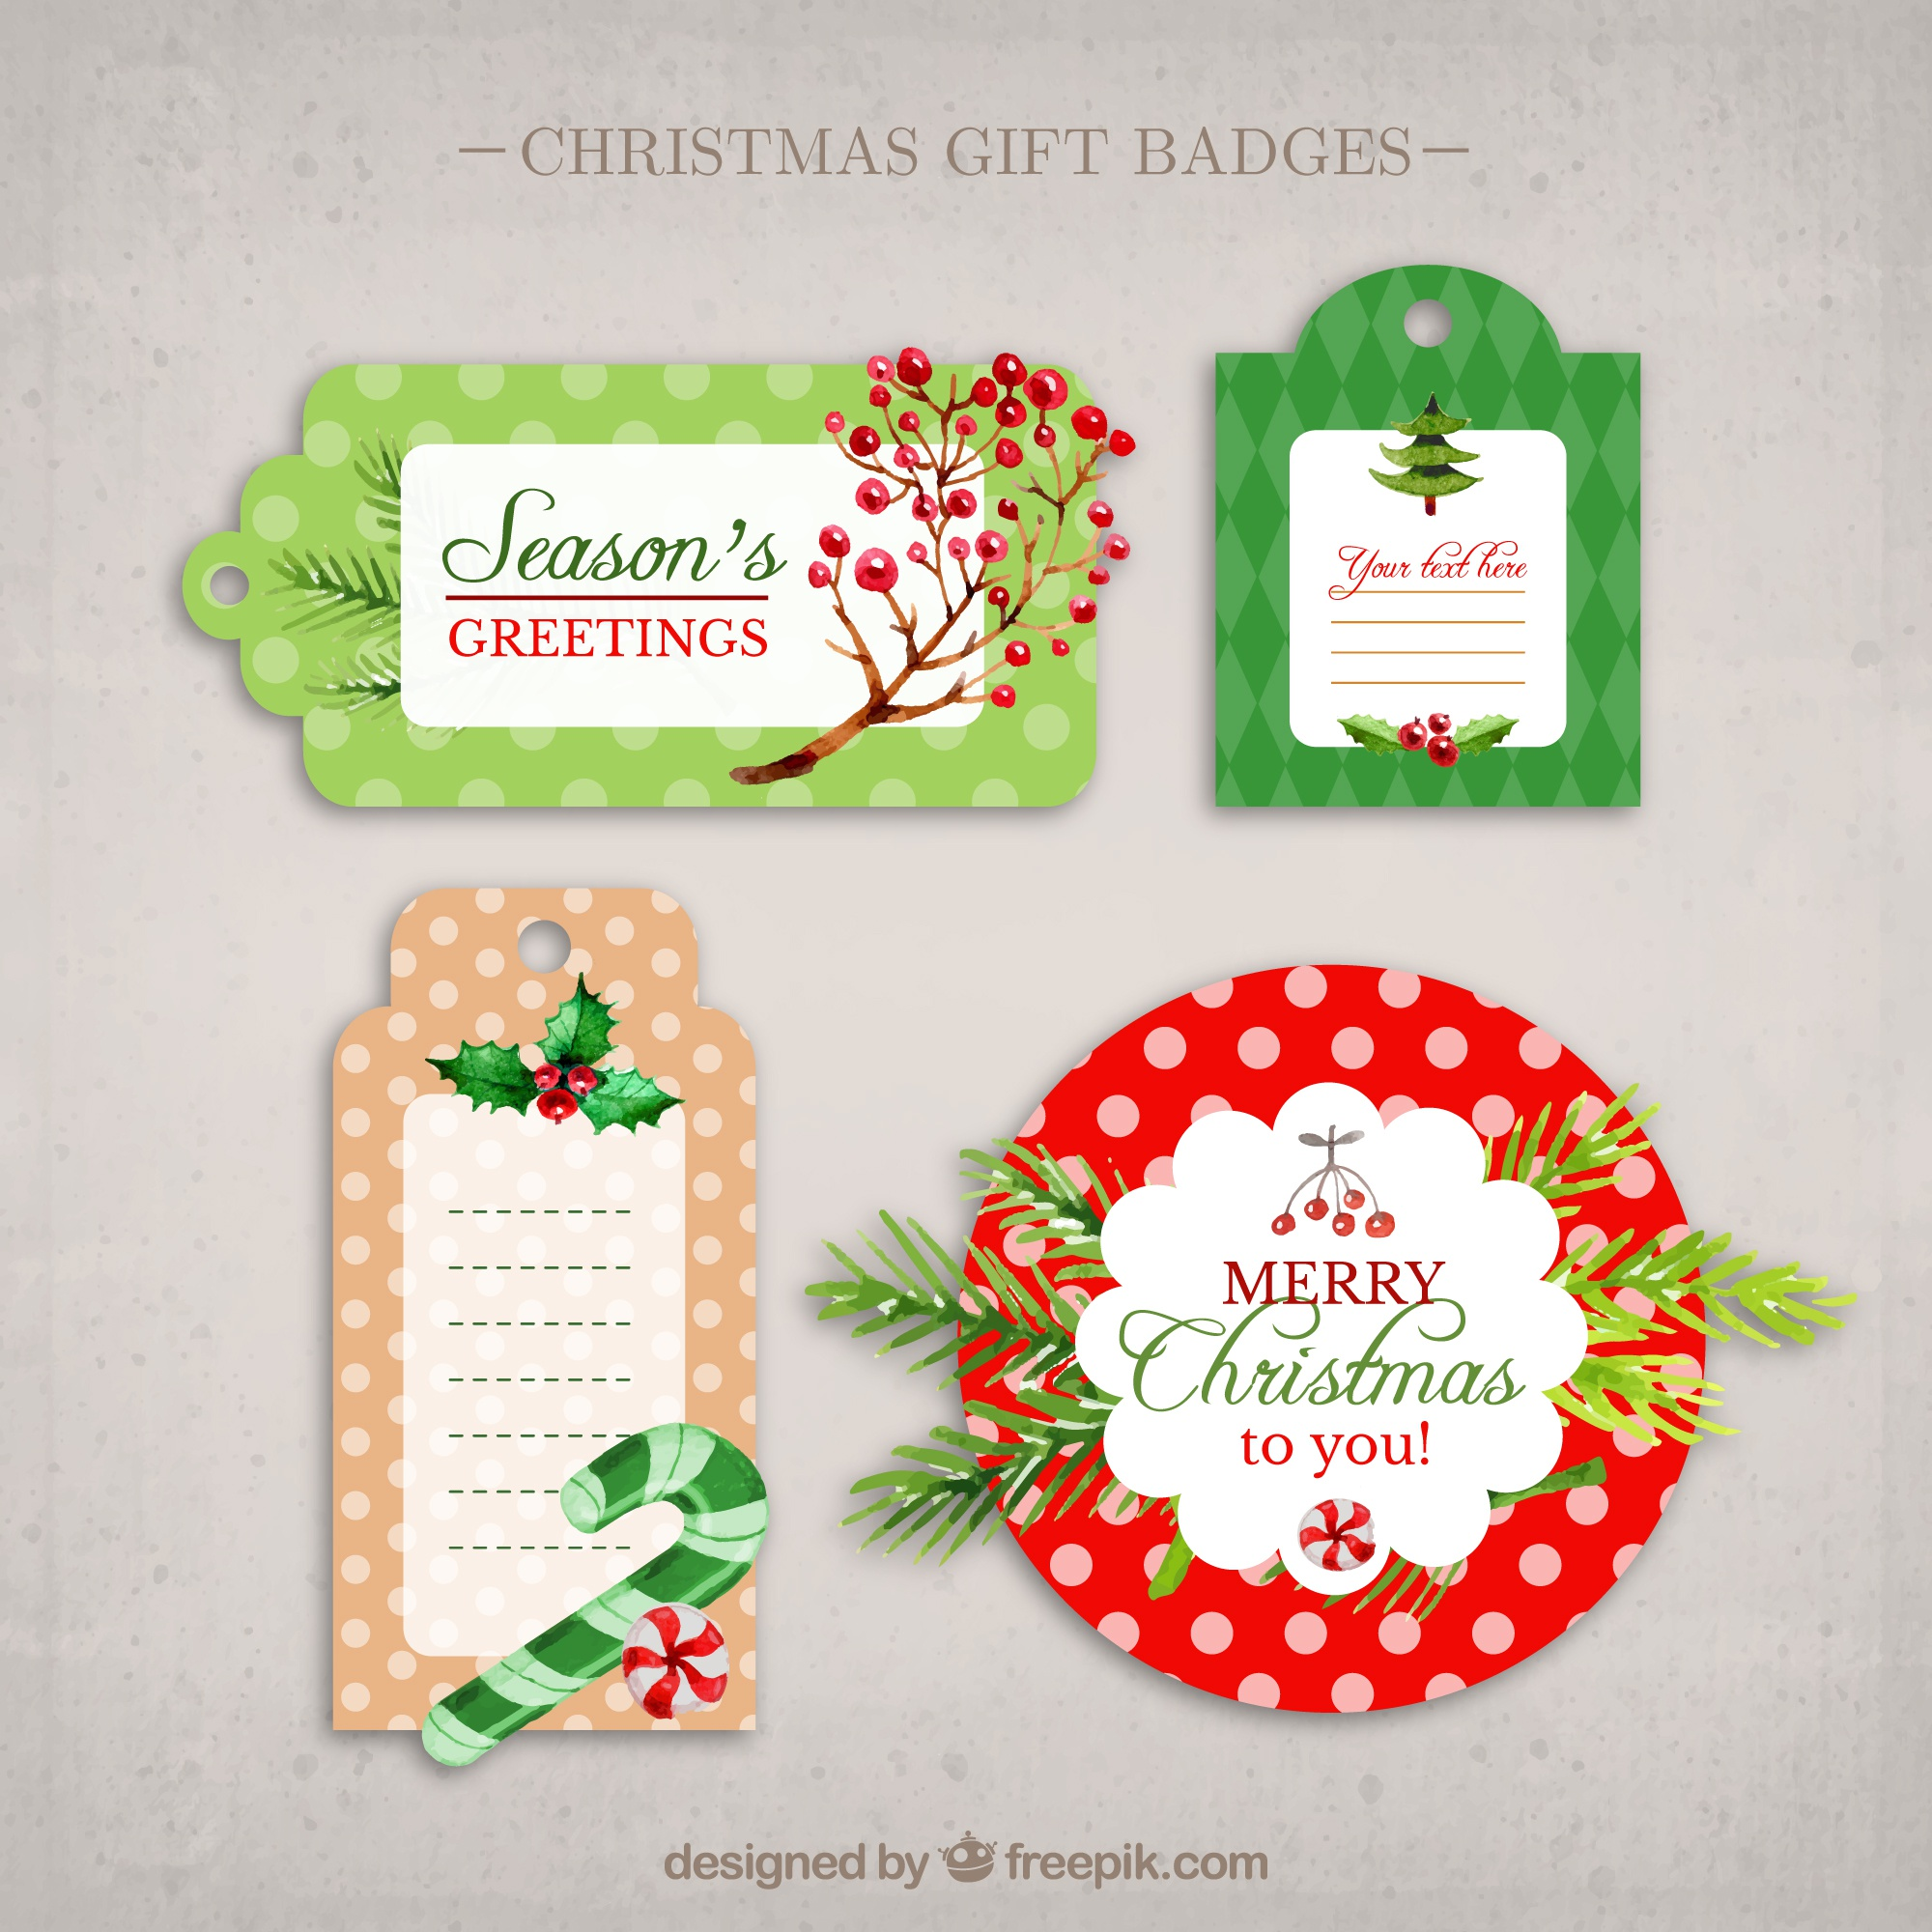 Christmas gift badges